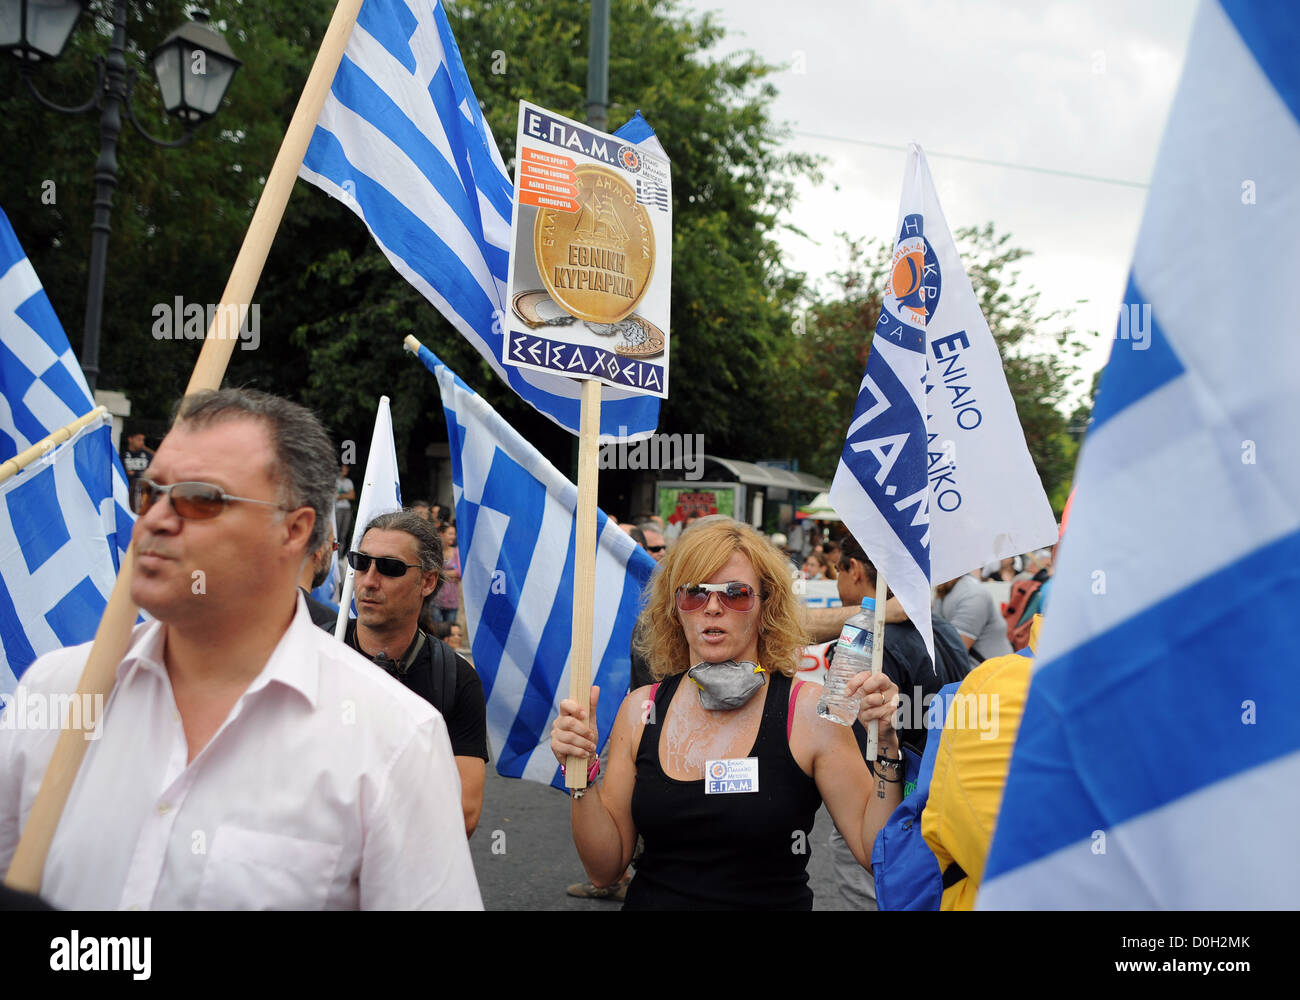 Greek people calling for a return to drachma during a protest in Athens' Syntagma square, in front of Greece's - Stock Image